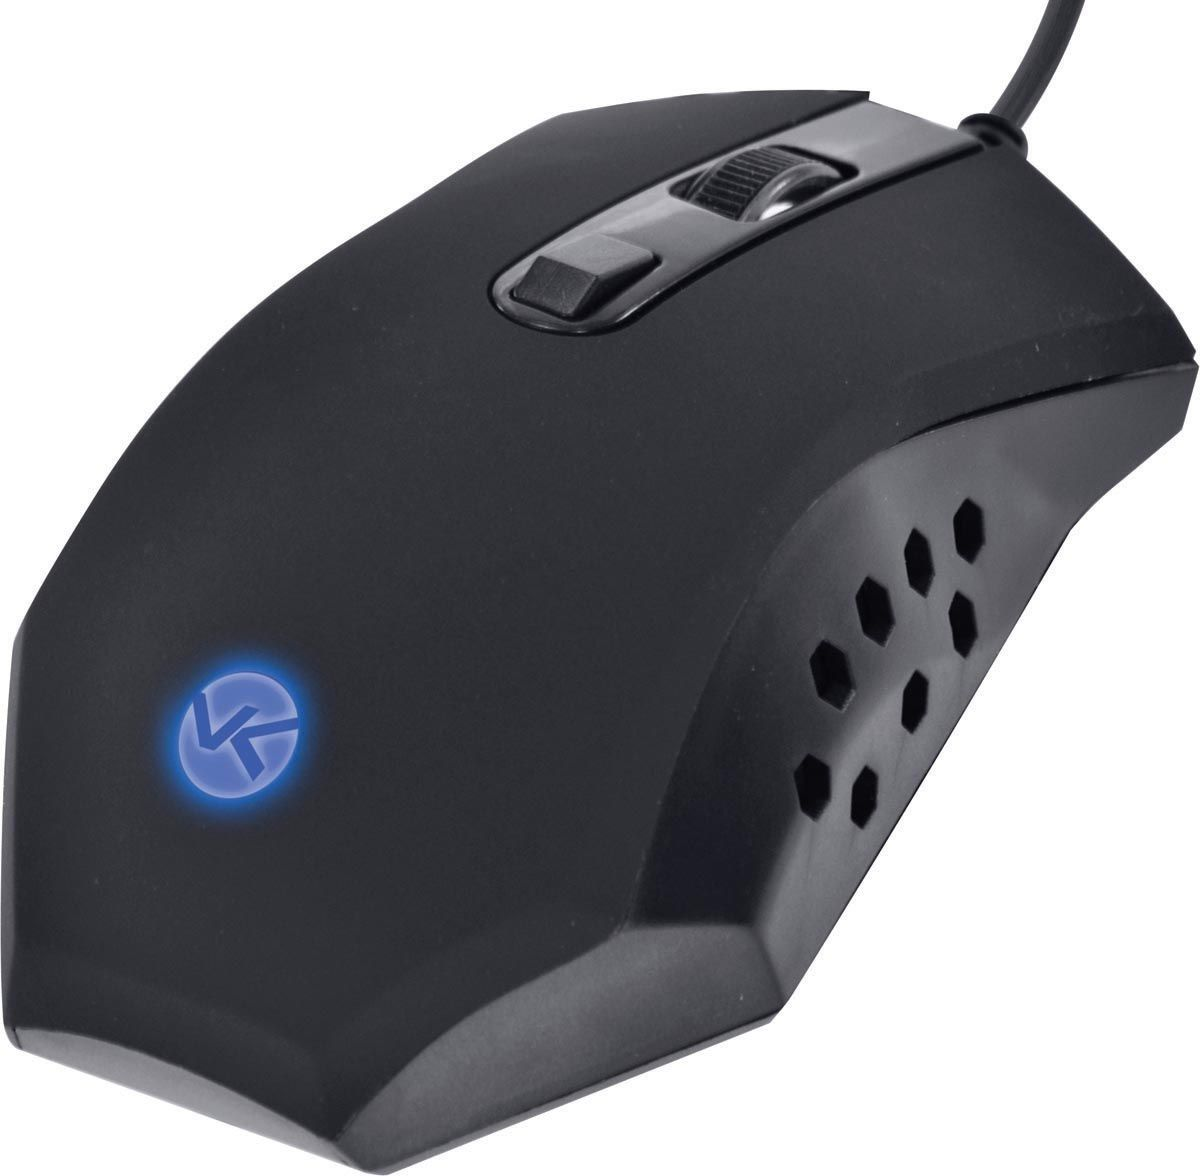 MOUSE OPTICO VX GAMING SNAKE 1600 DPI LED AZUL